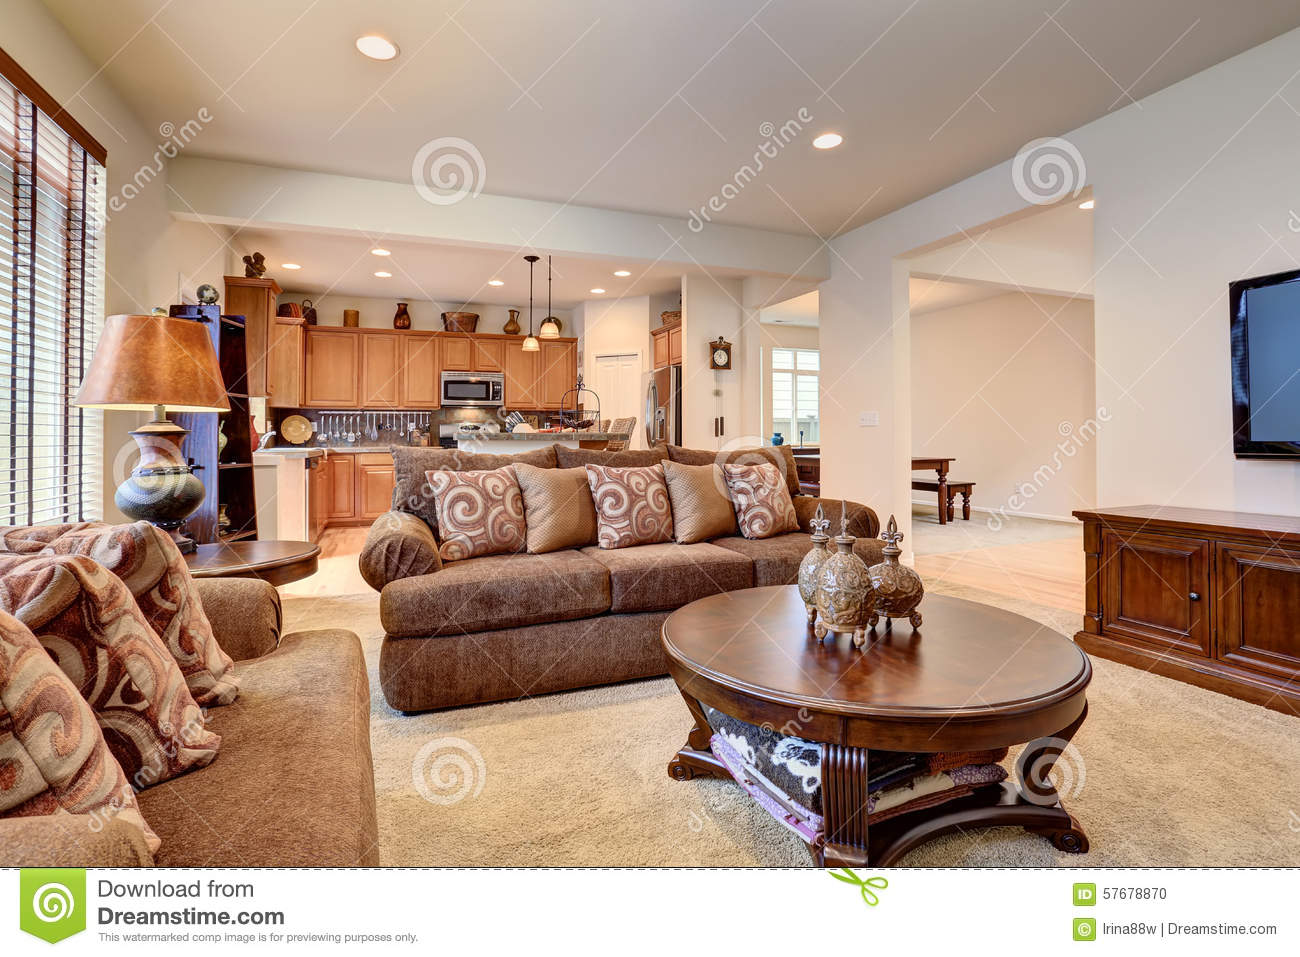 American Wohnzimmer Typical Living Room In American Home With Carpet And